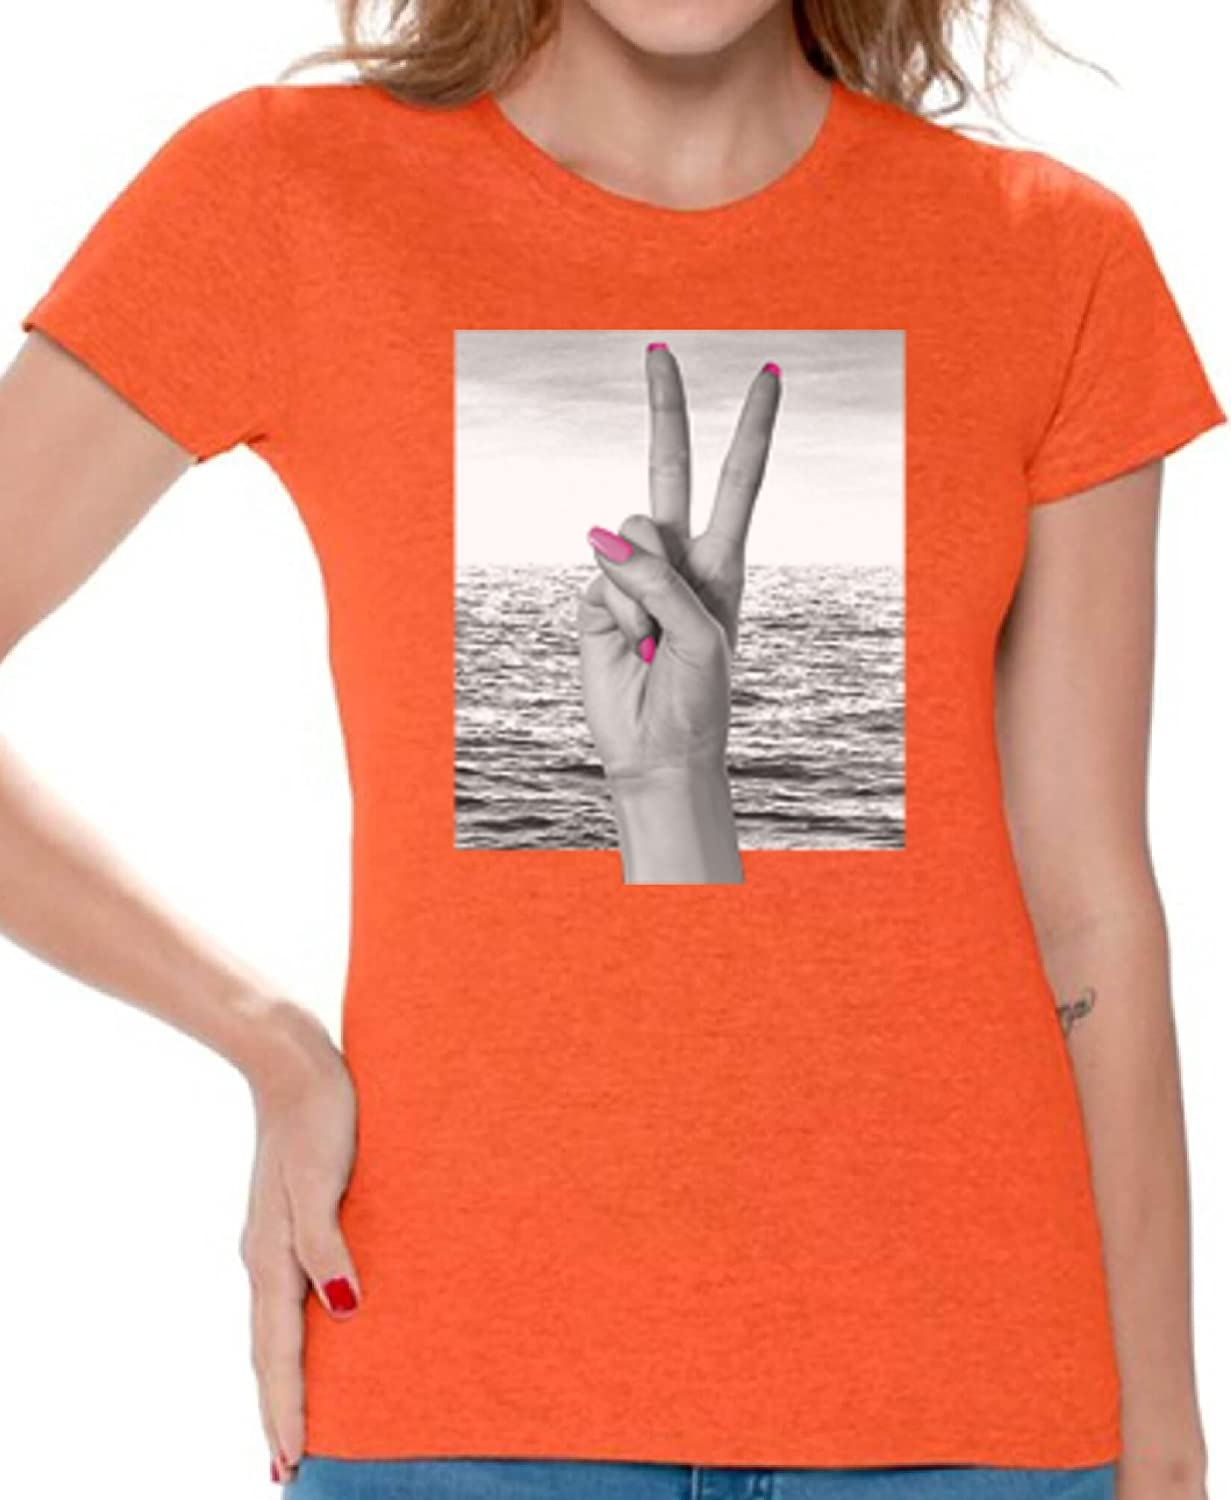 Awkward Styles Women's Peace Sign Hand in Front of Ocean T Shirts Tee Tops for Women Orange 3XL